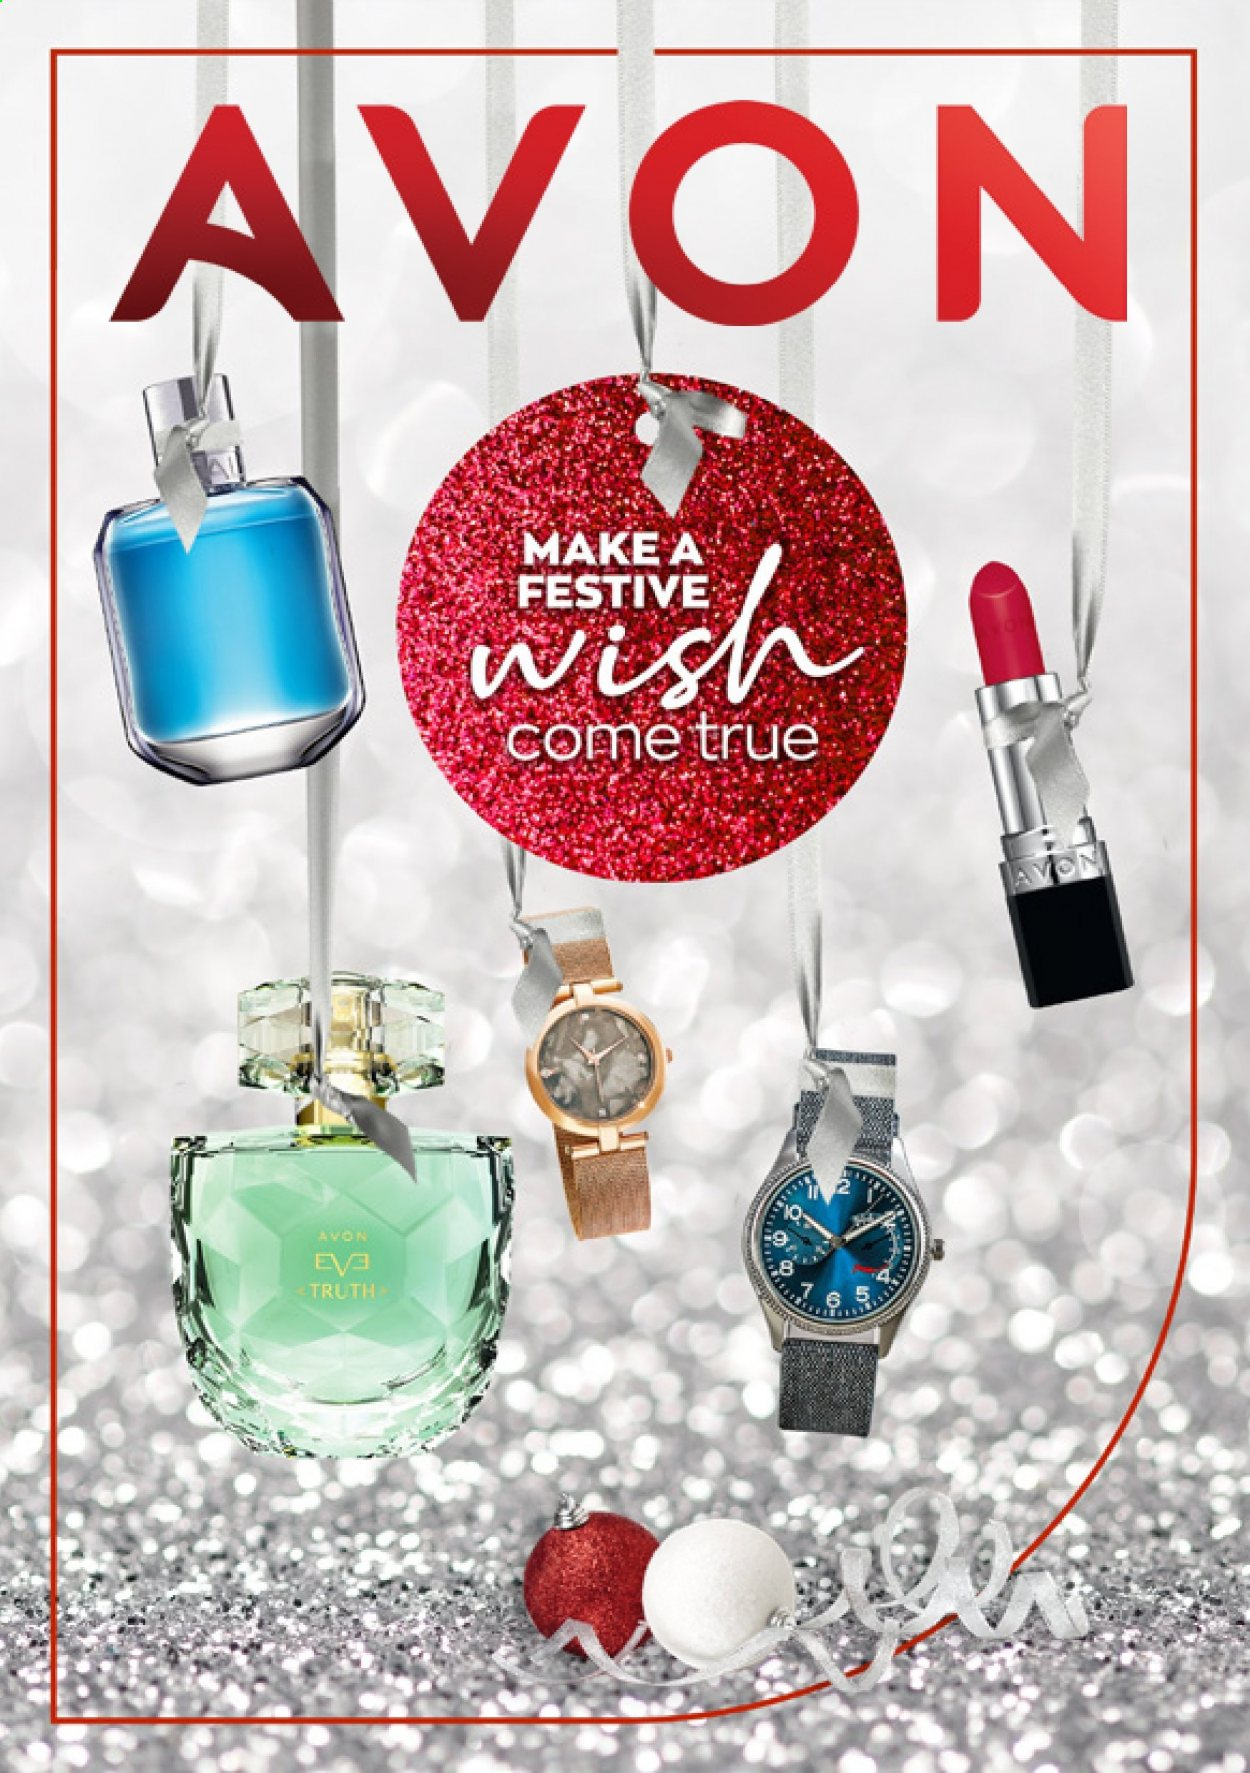 Avon catalogue  - 11.13.2020 - 11.30.2020 - Sales products - Avon. Page 1.